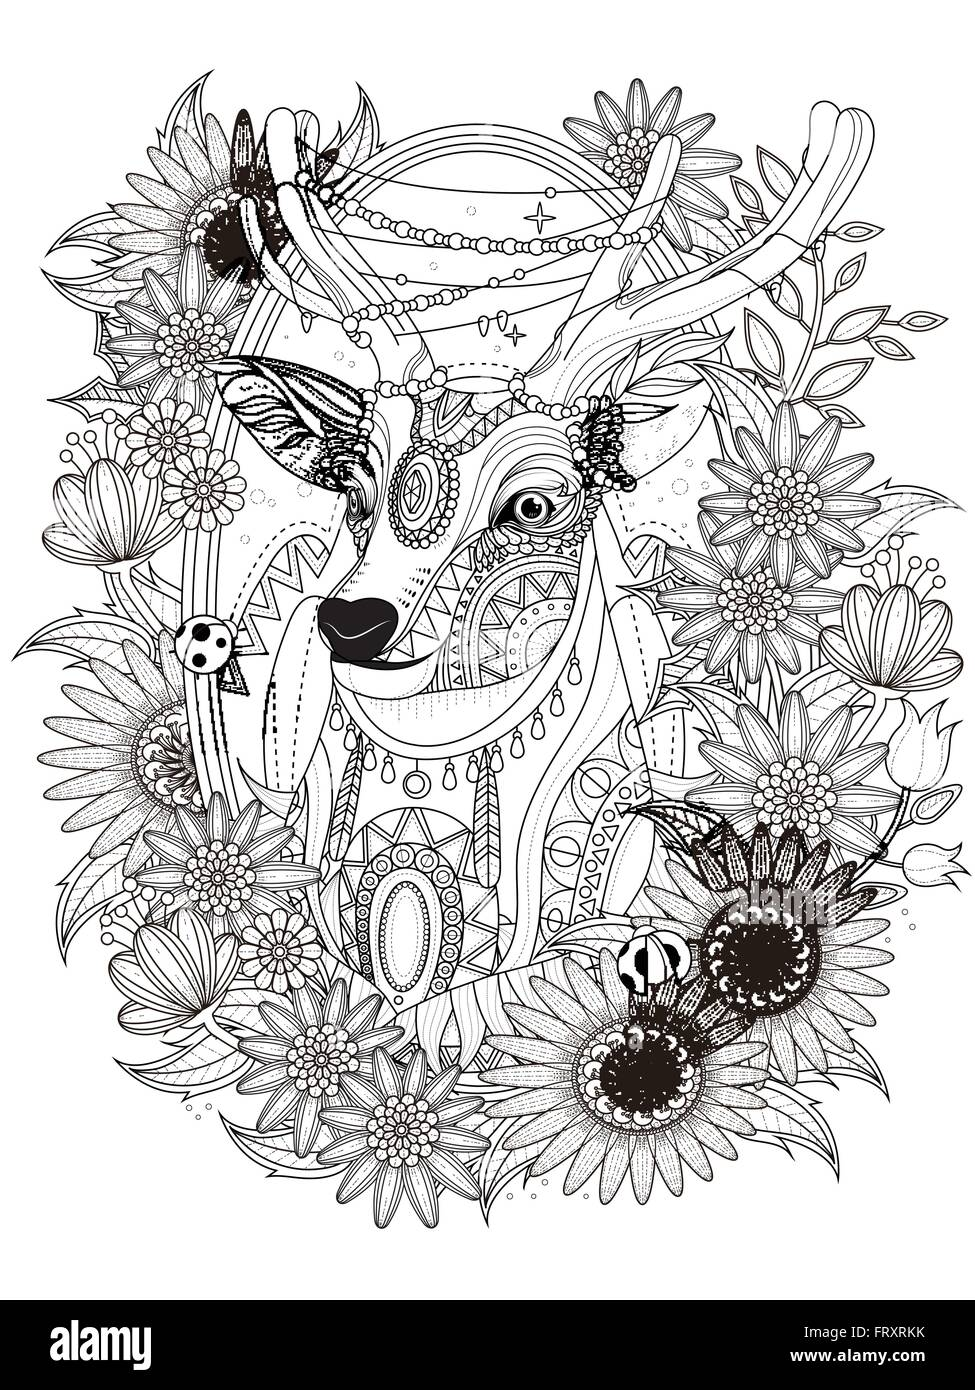 Gorgeous Deer With Floral Wreath Adult Coloring Page Stock